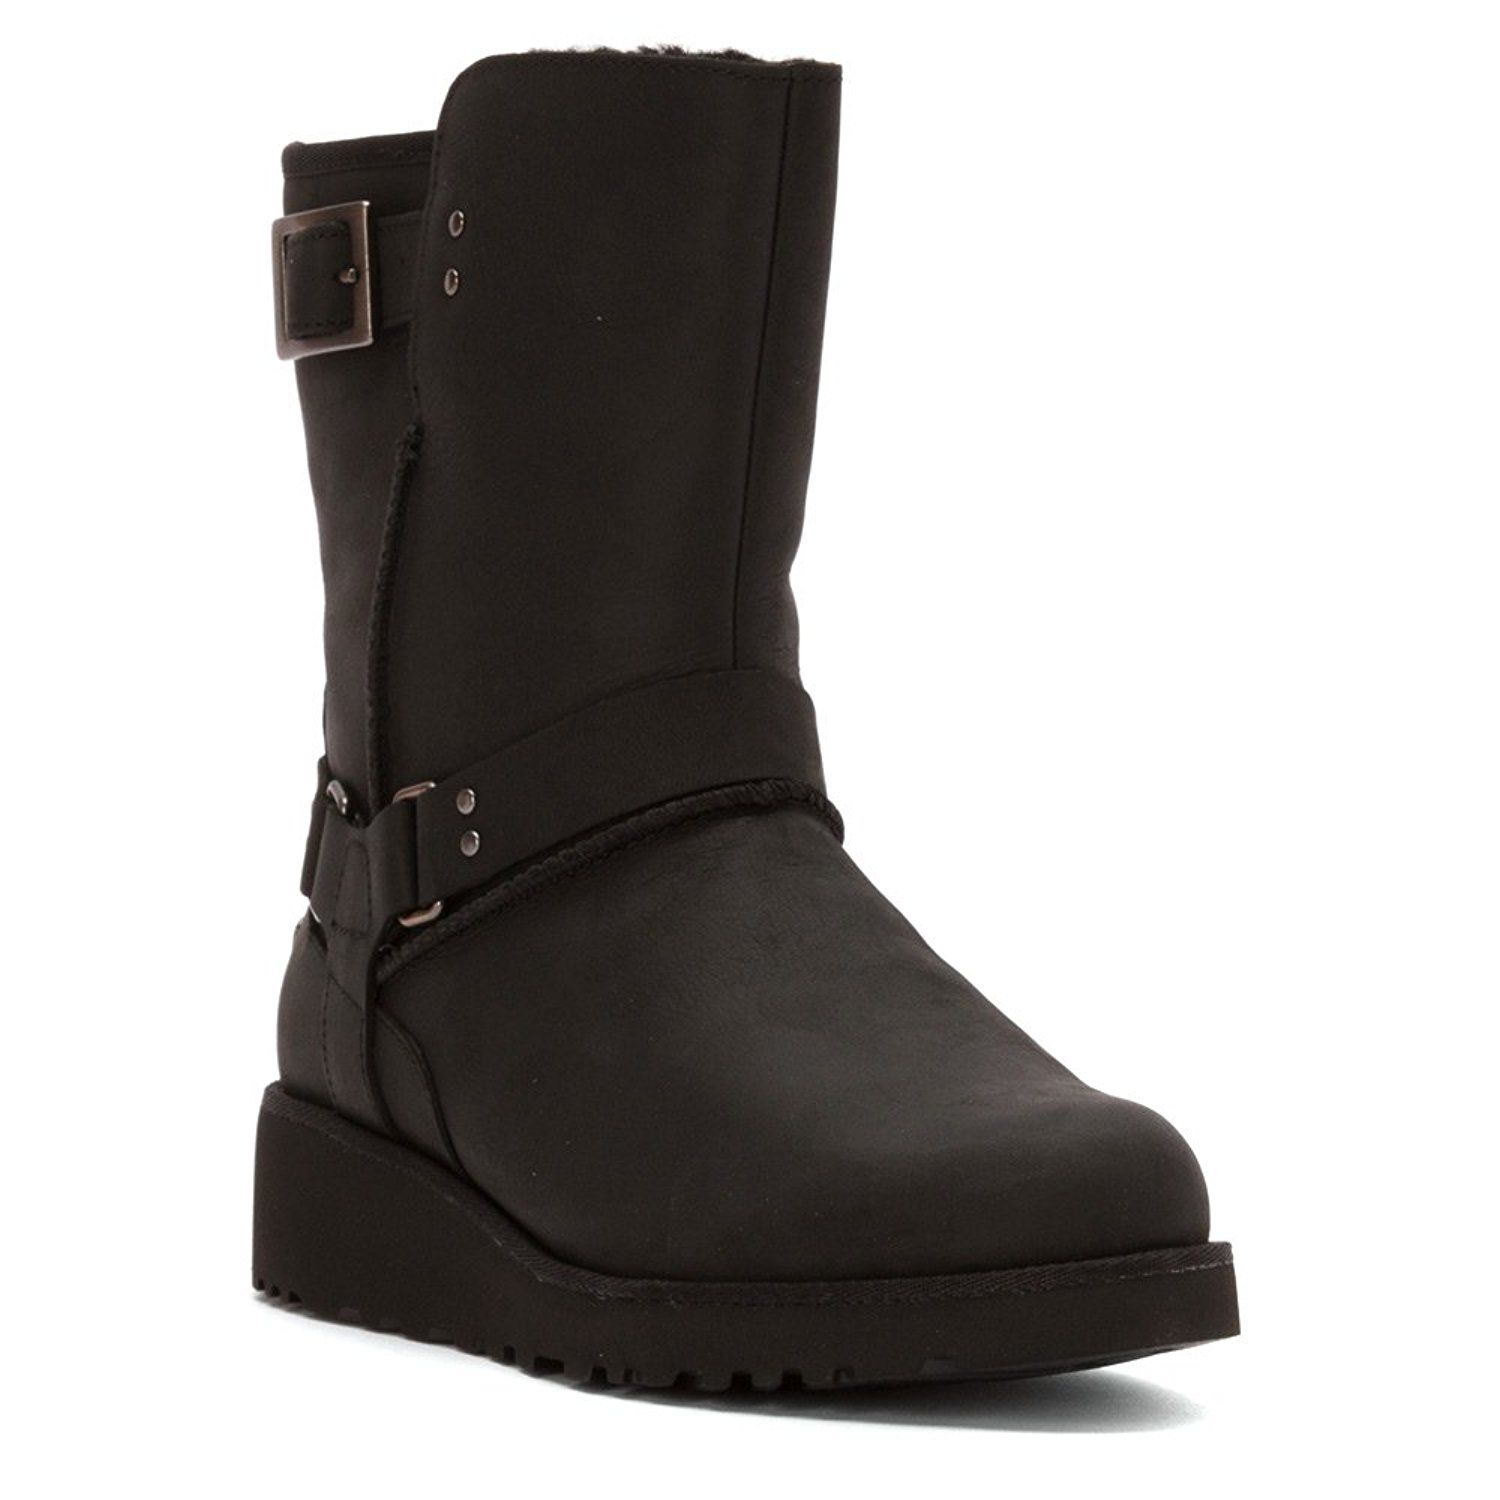 Discount Sale Ugg Maddox Boots Womens Chestnut Online Store